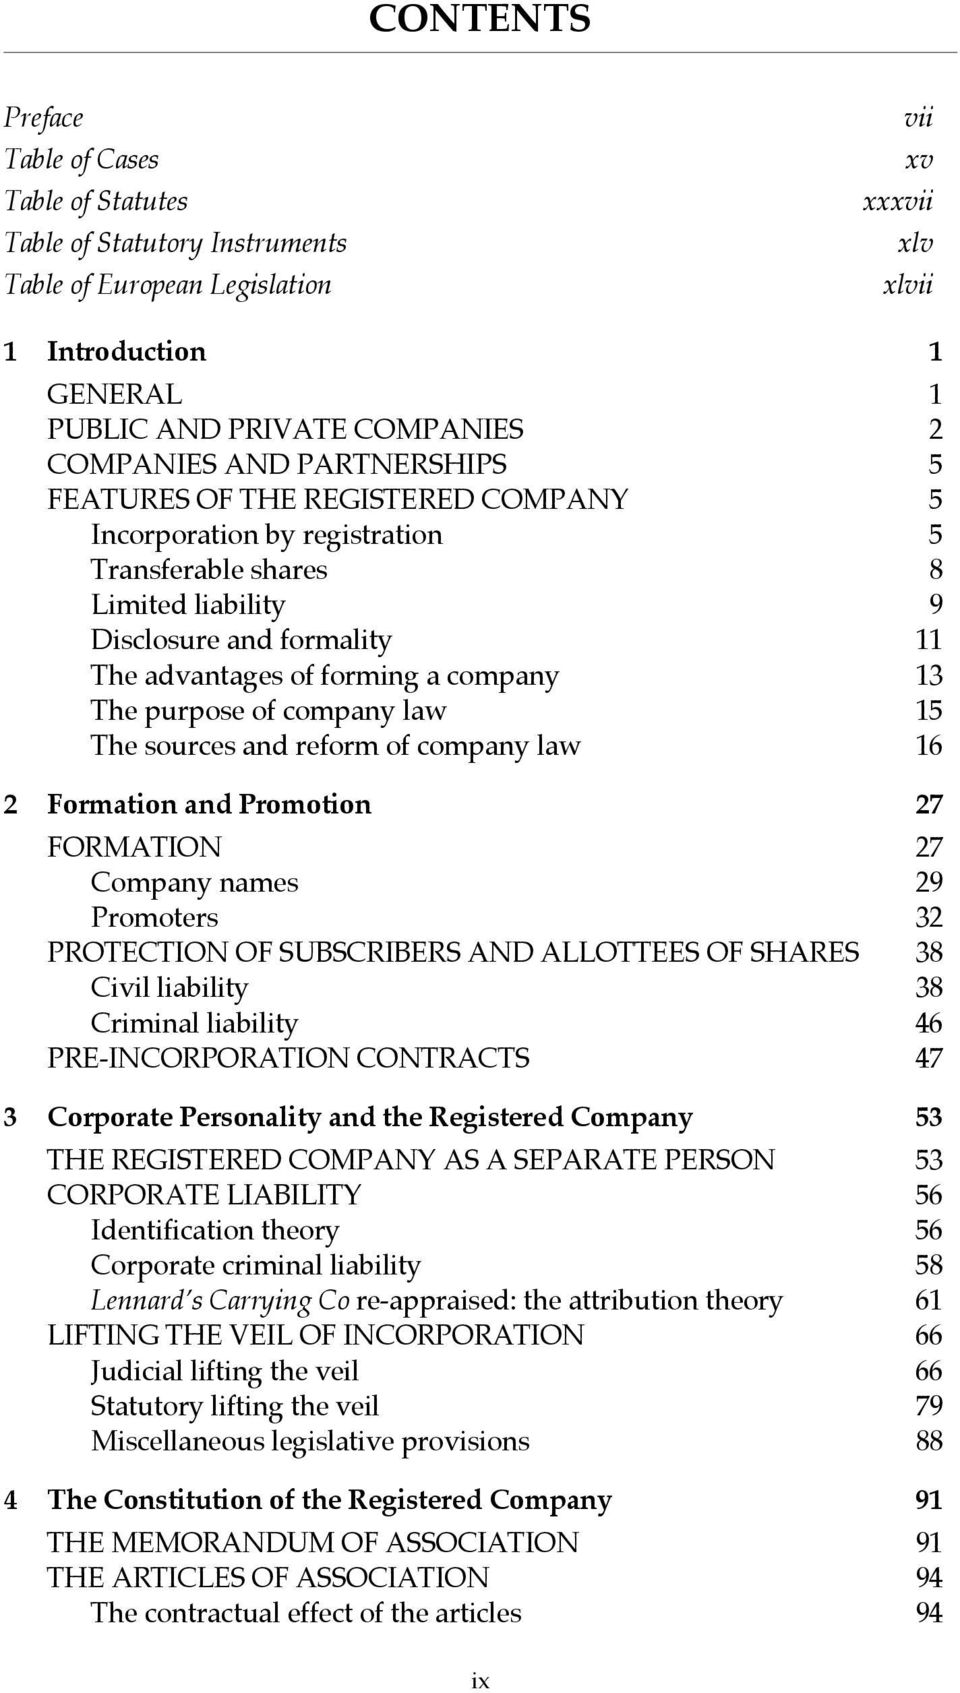 company 13 The purpose of company law 15 The sources and reform of company law 16 2 Formation and Promotion 27 FORMATION 27 Company names 29 Promoters 32 PROTECTION OF SUBSCRIBERS AND ALLOTTEES OF